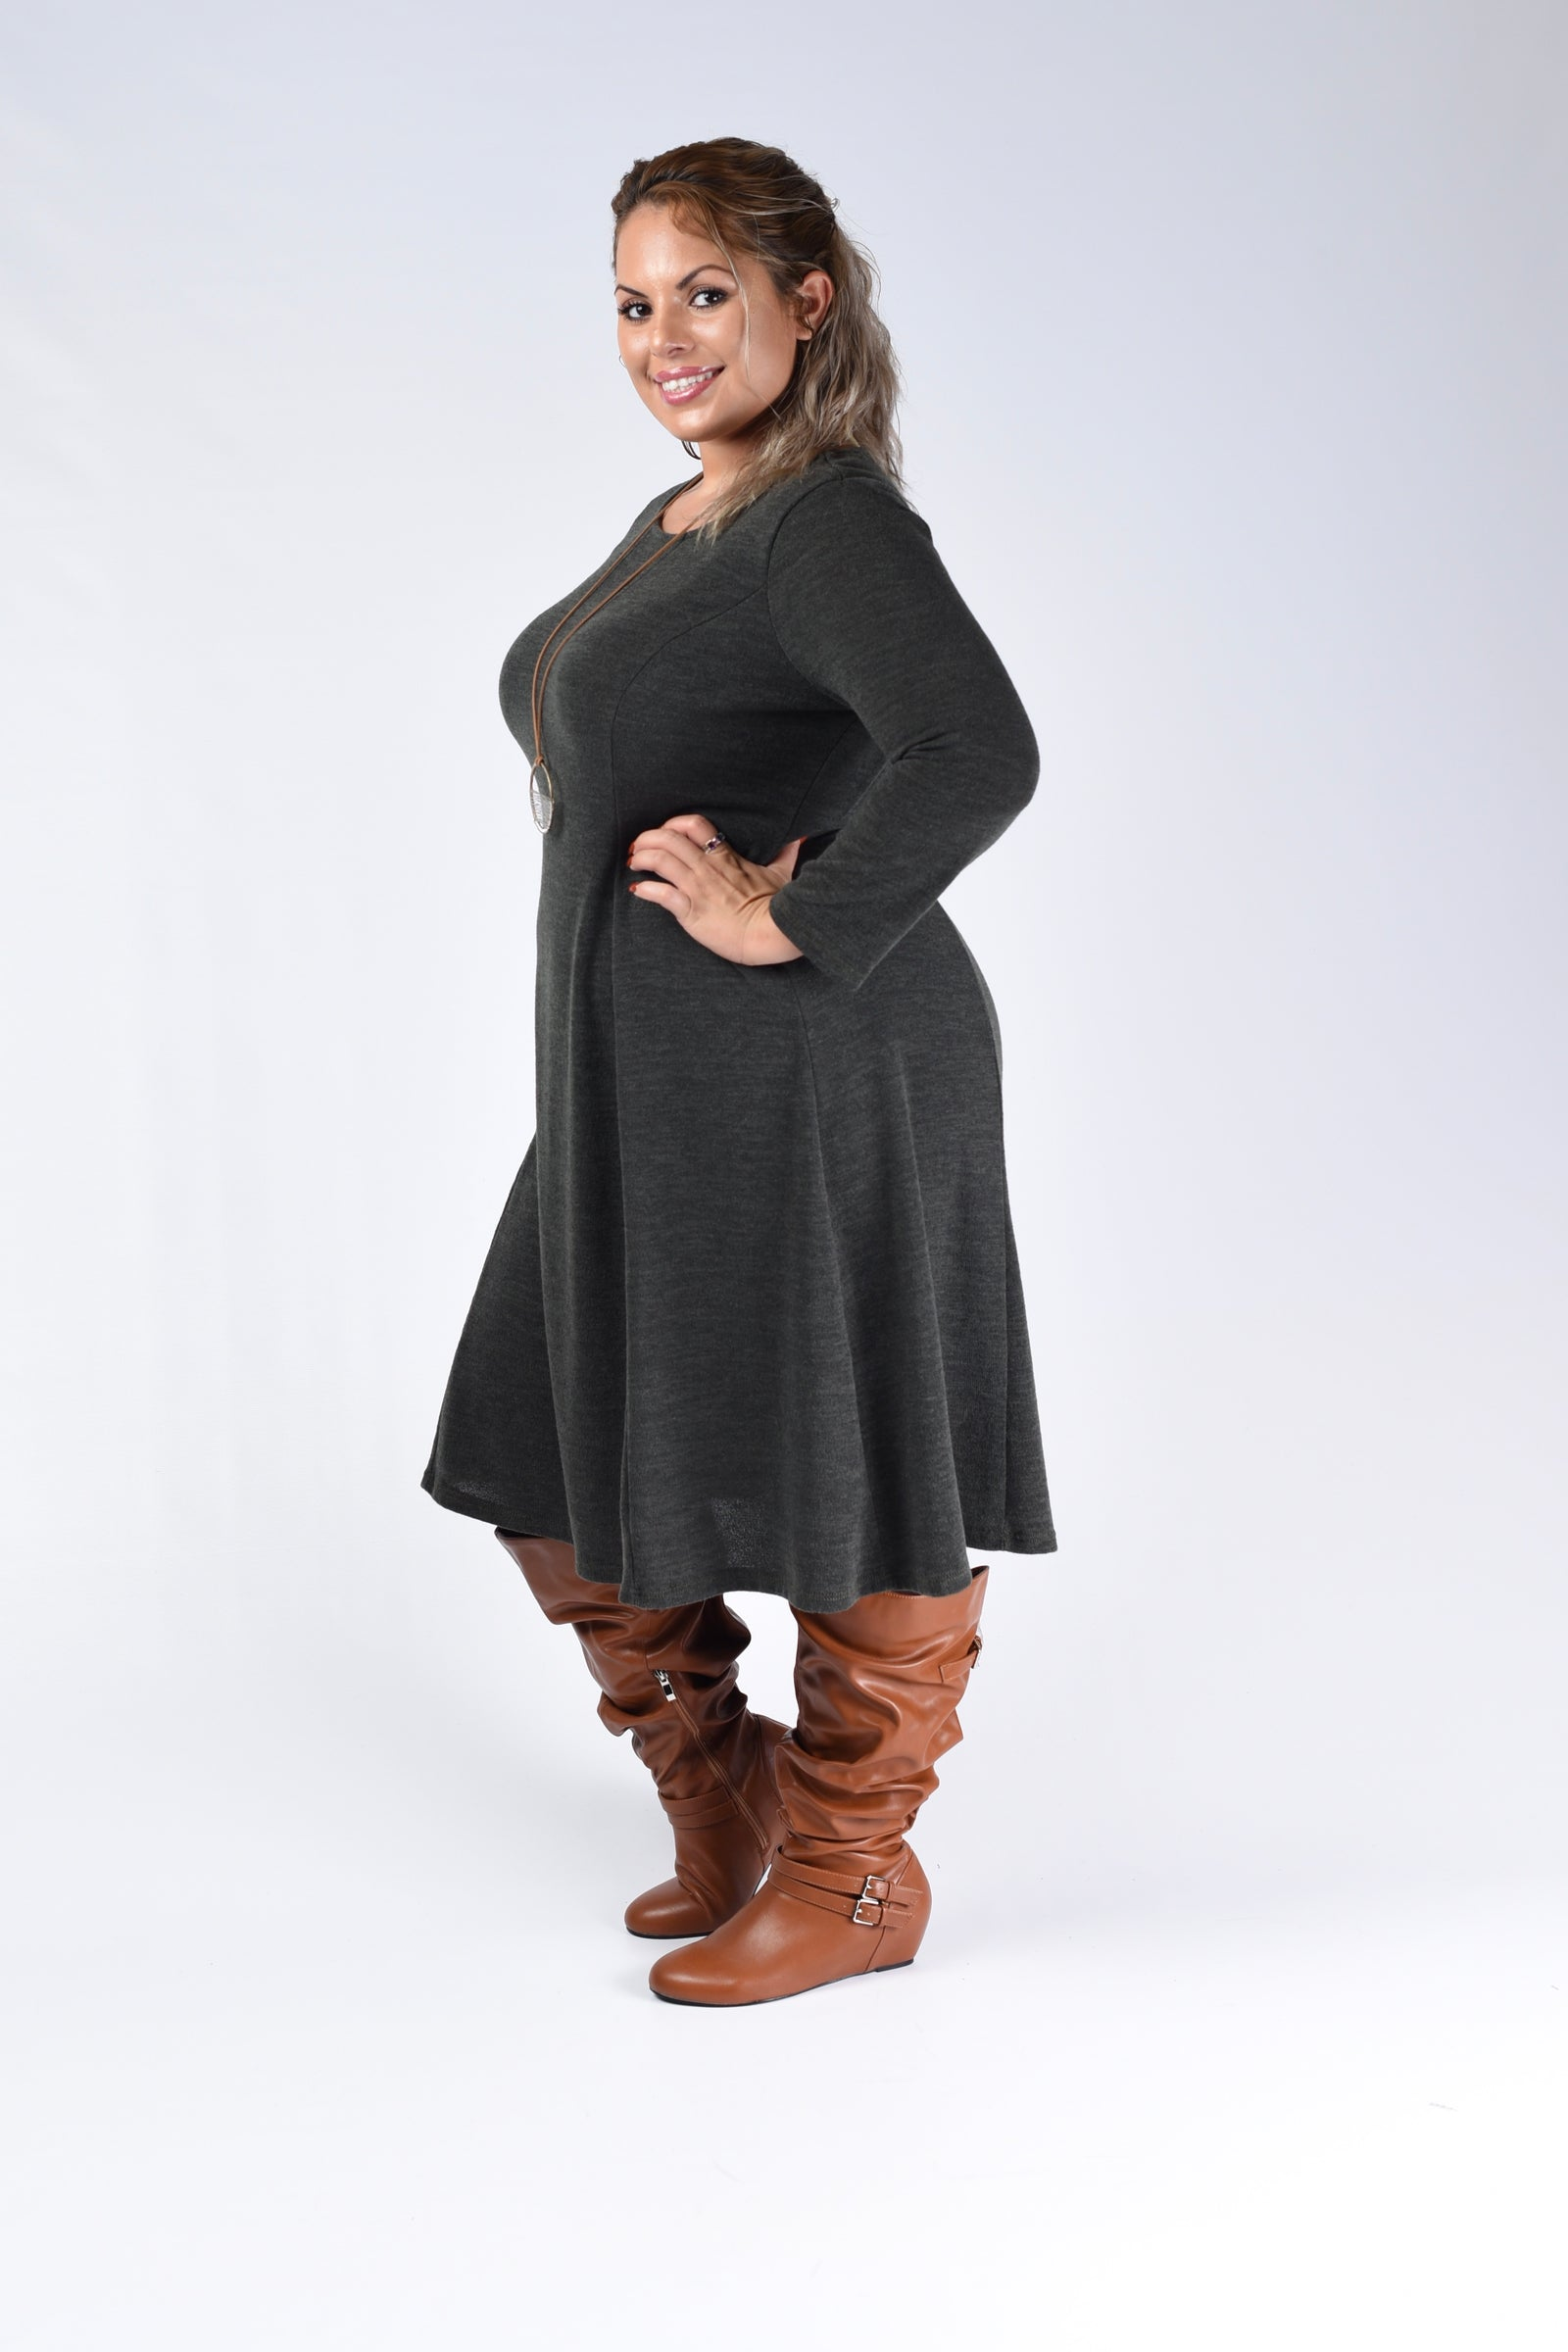 Olive Midi Flare Dress - www.mycurvystore.com - Curvy Boutique - Plus Size